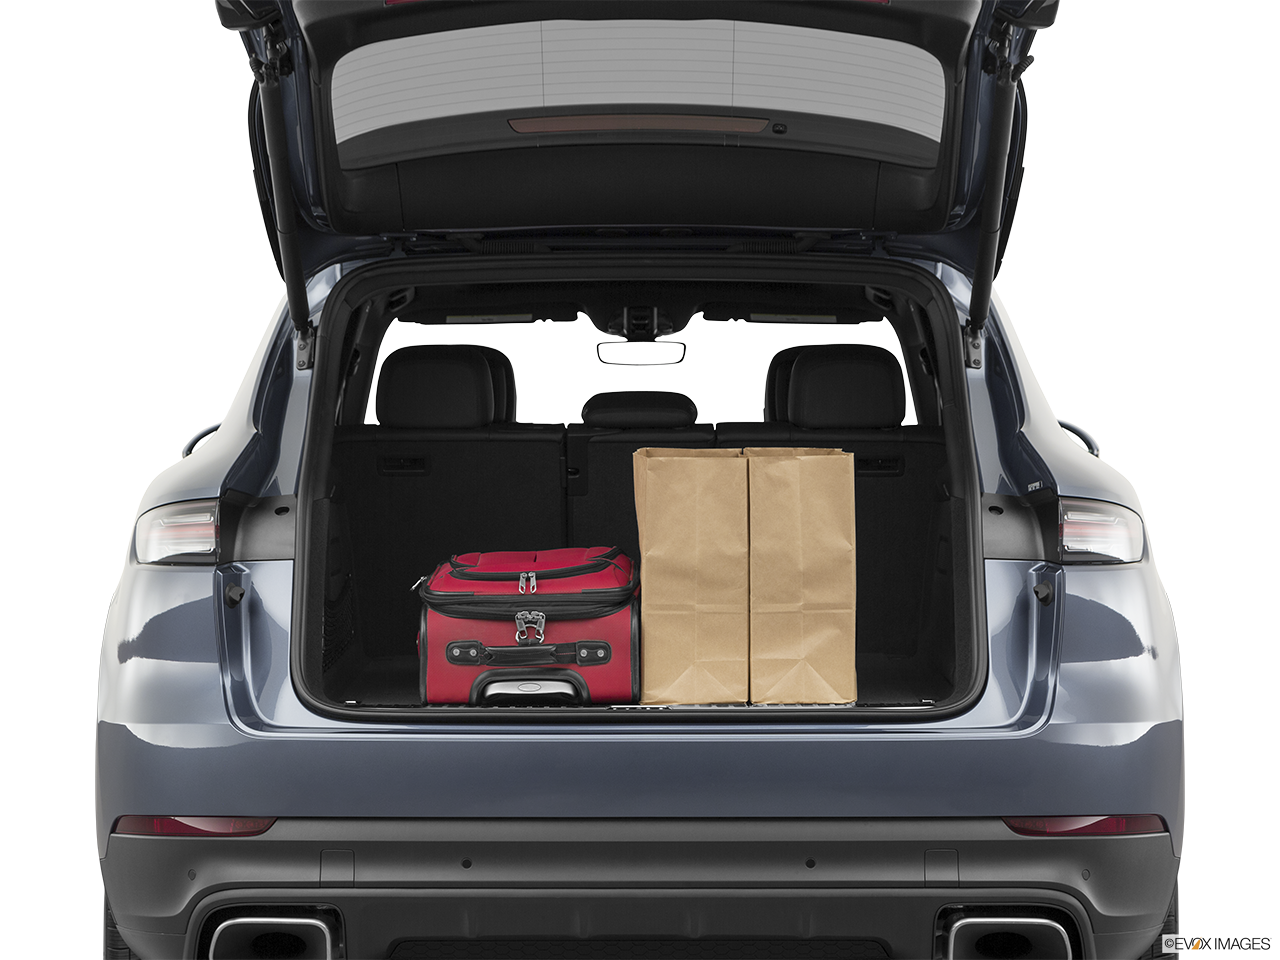 Trunk view of the Porsche Cayenne S E Hybrid